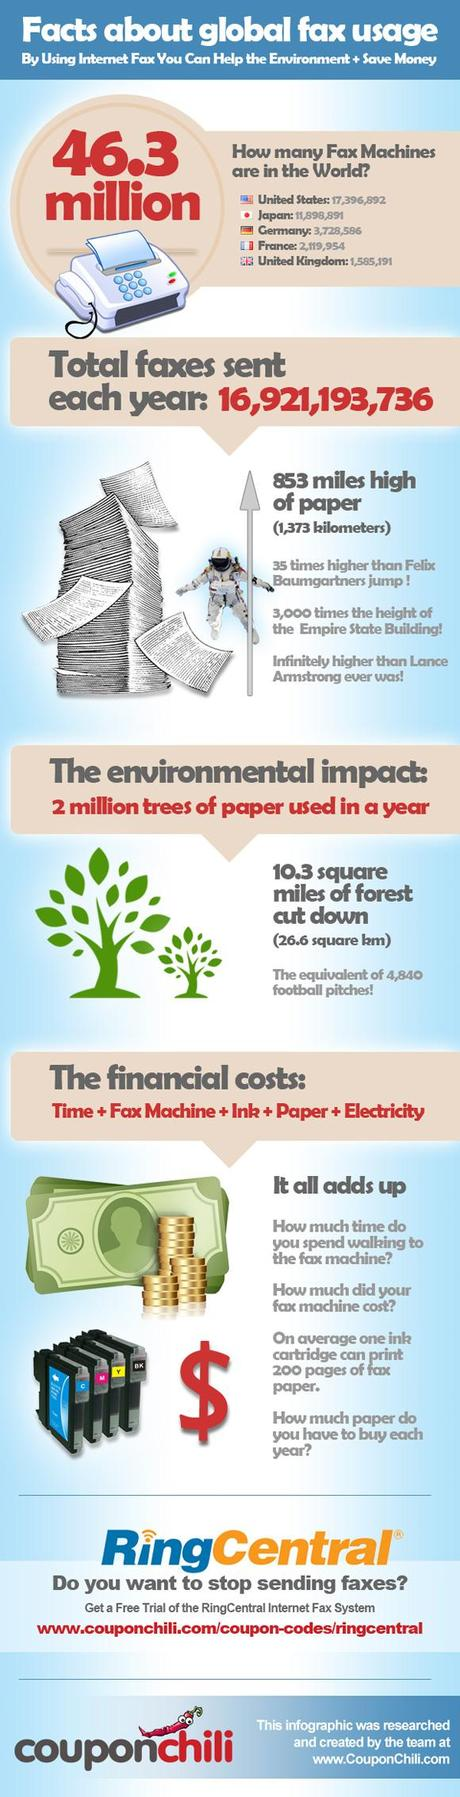 Global Fax Usage Infographic